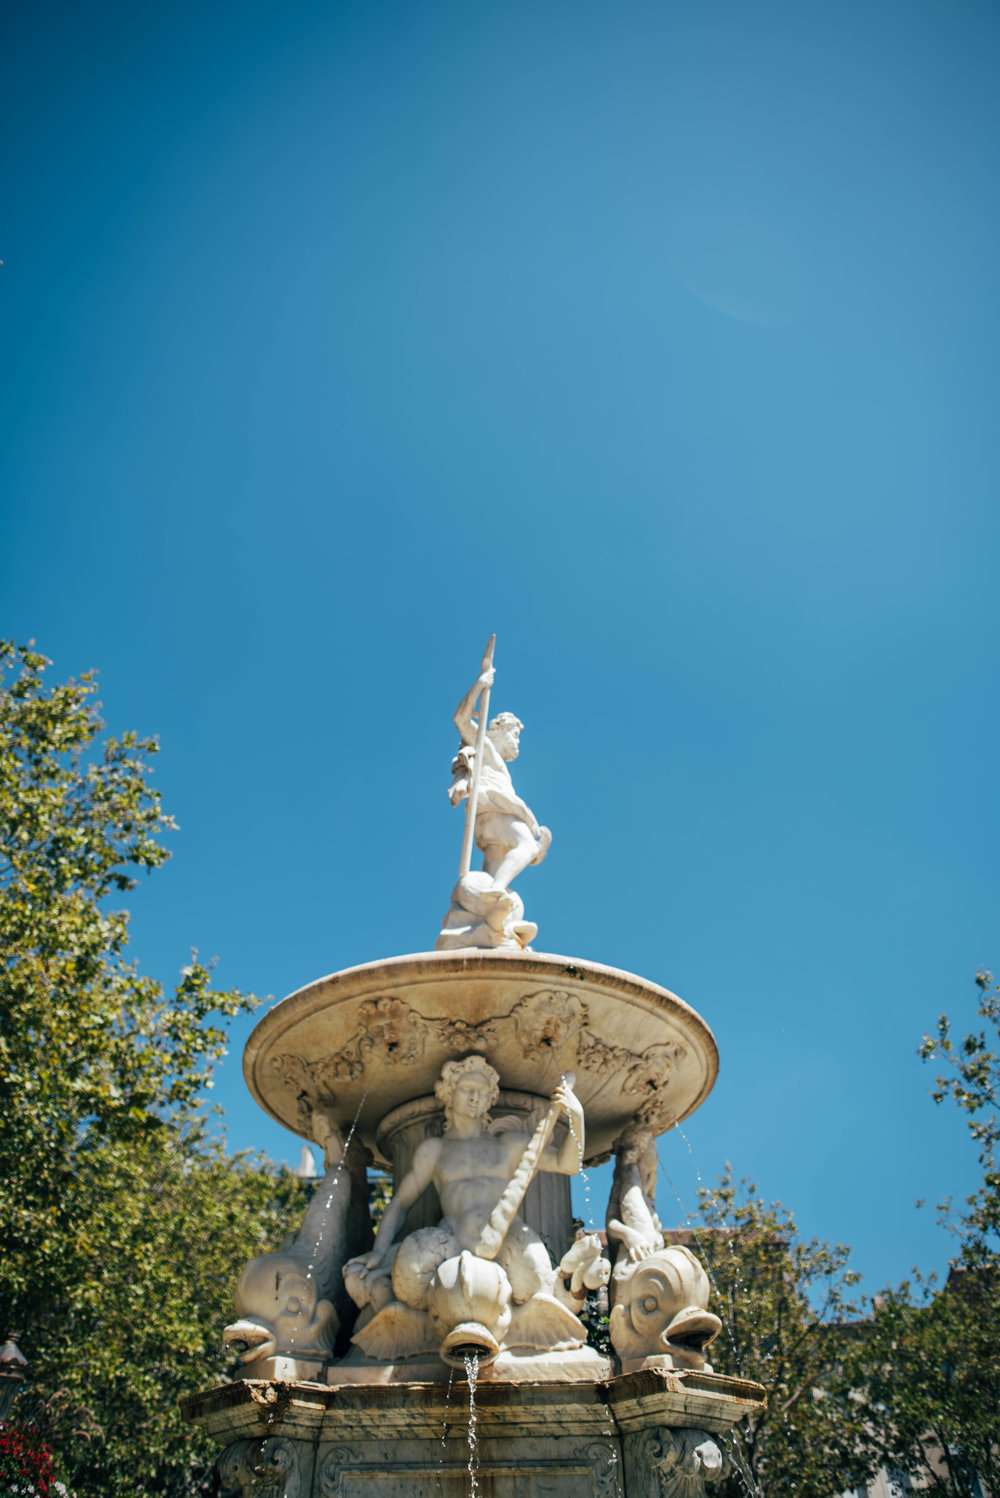 La Fontaine de Neptune Carcassonne France Essex UK Documentary Photographer